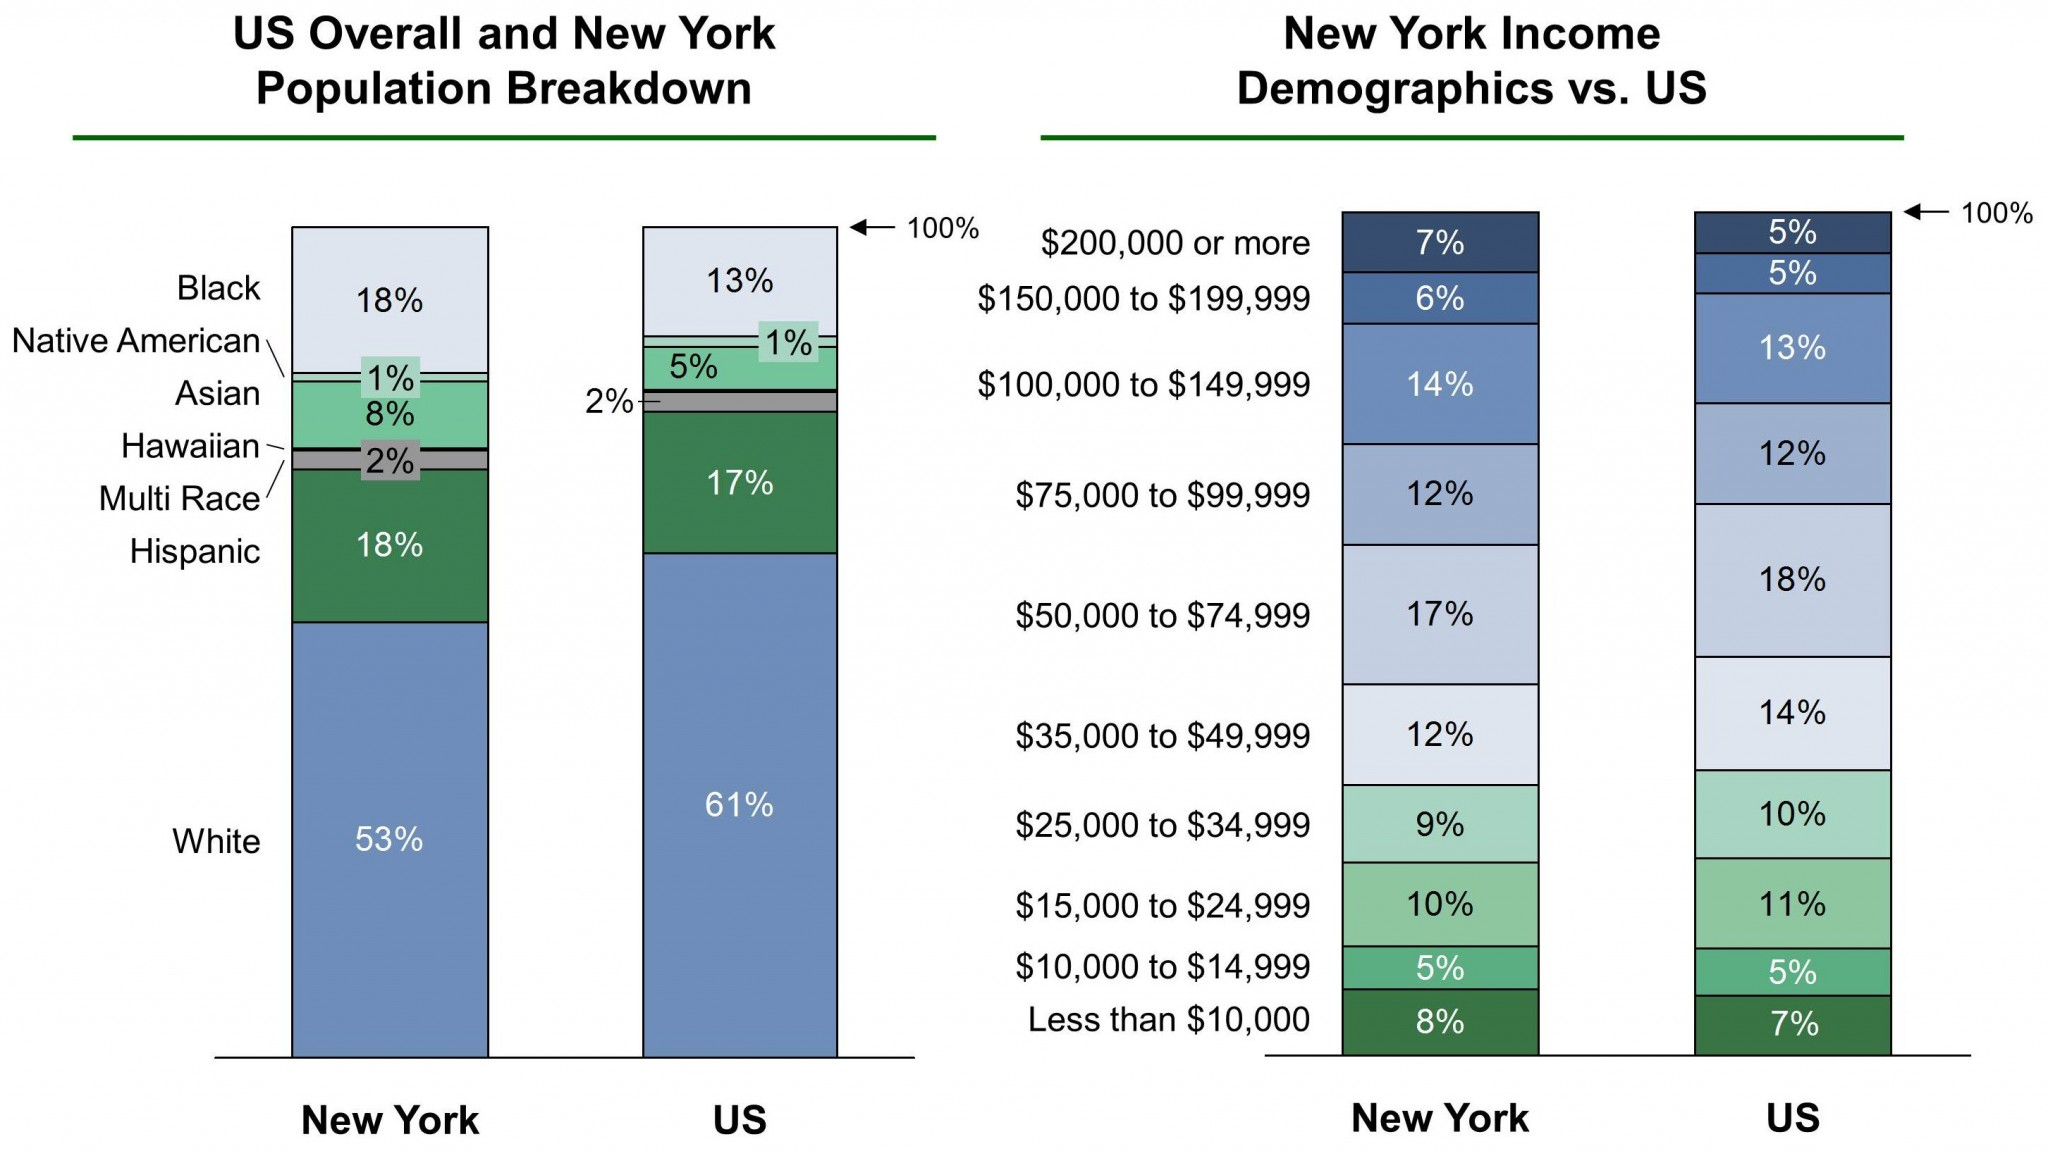 New York EB-5 Regional Center Demographics VF